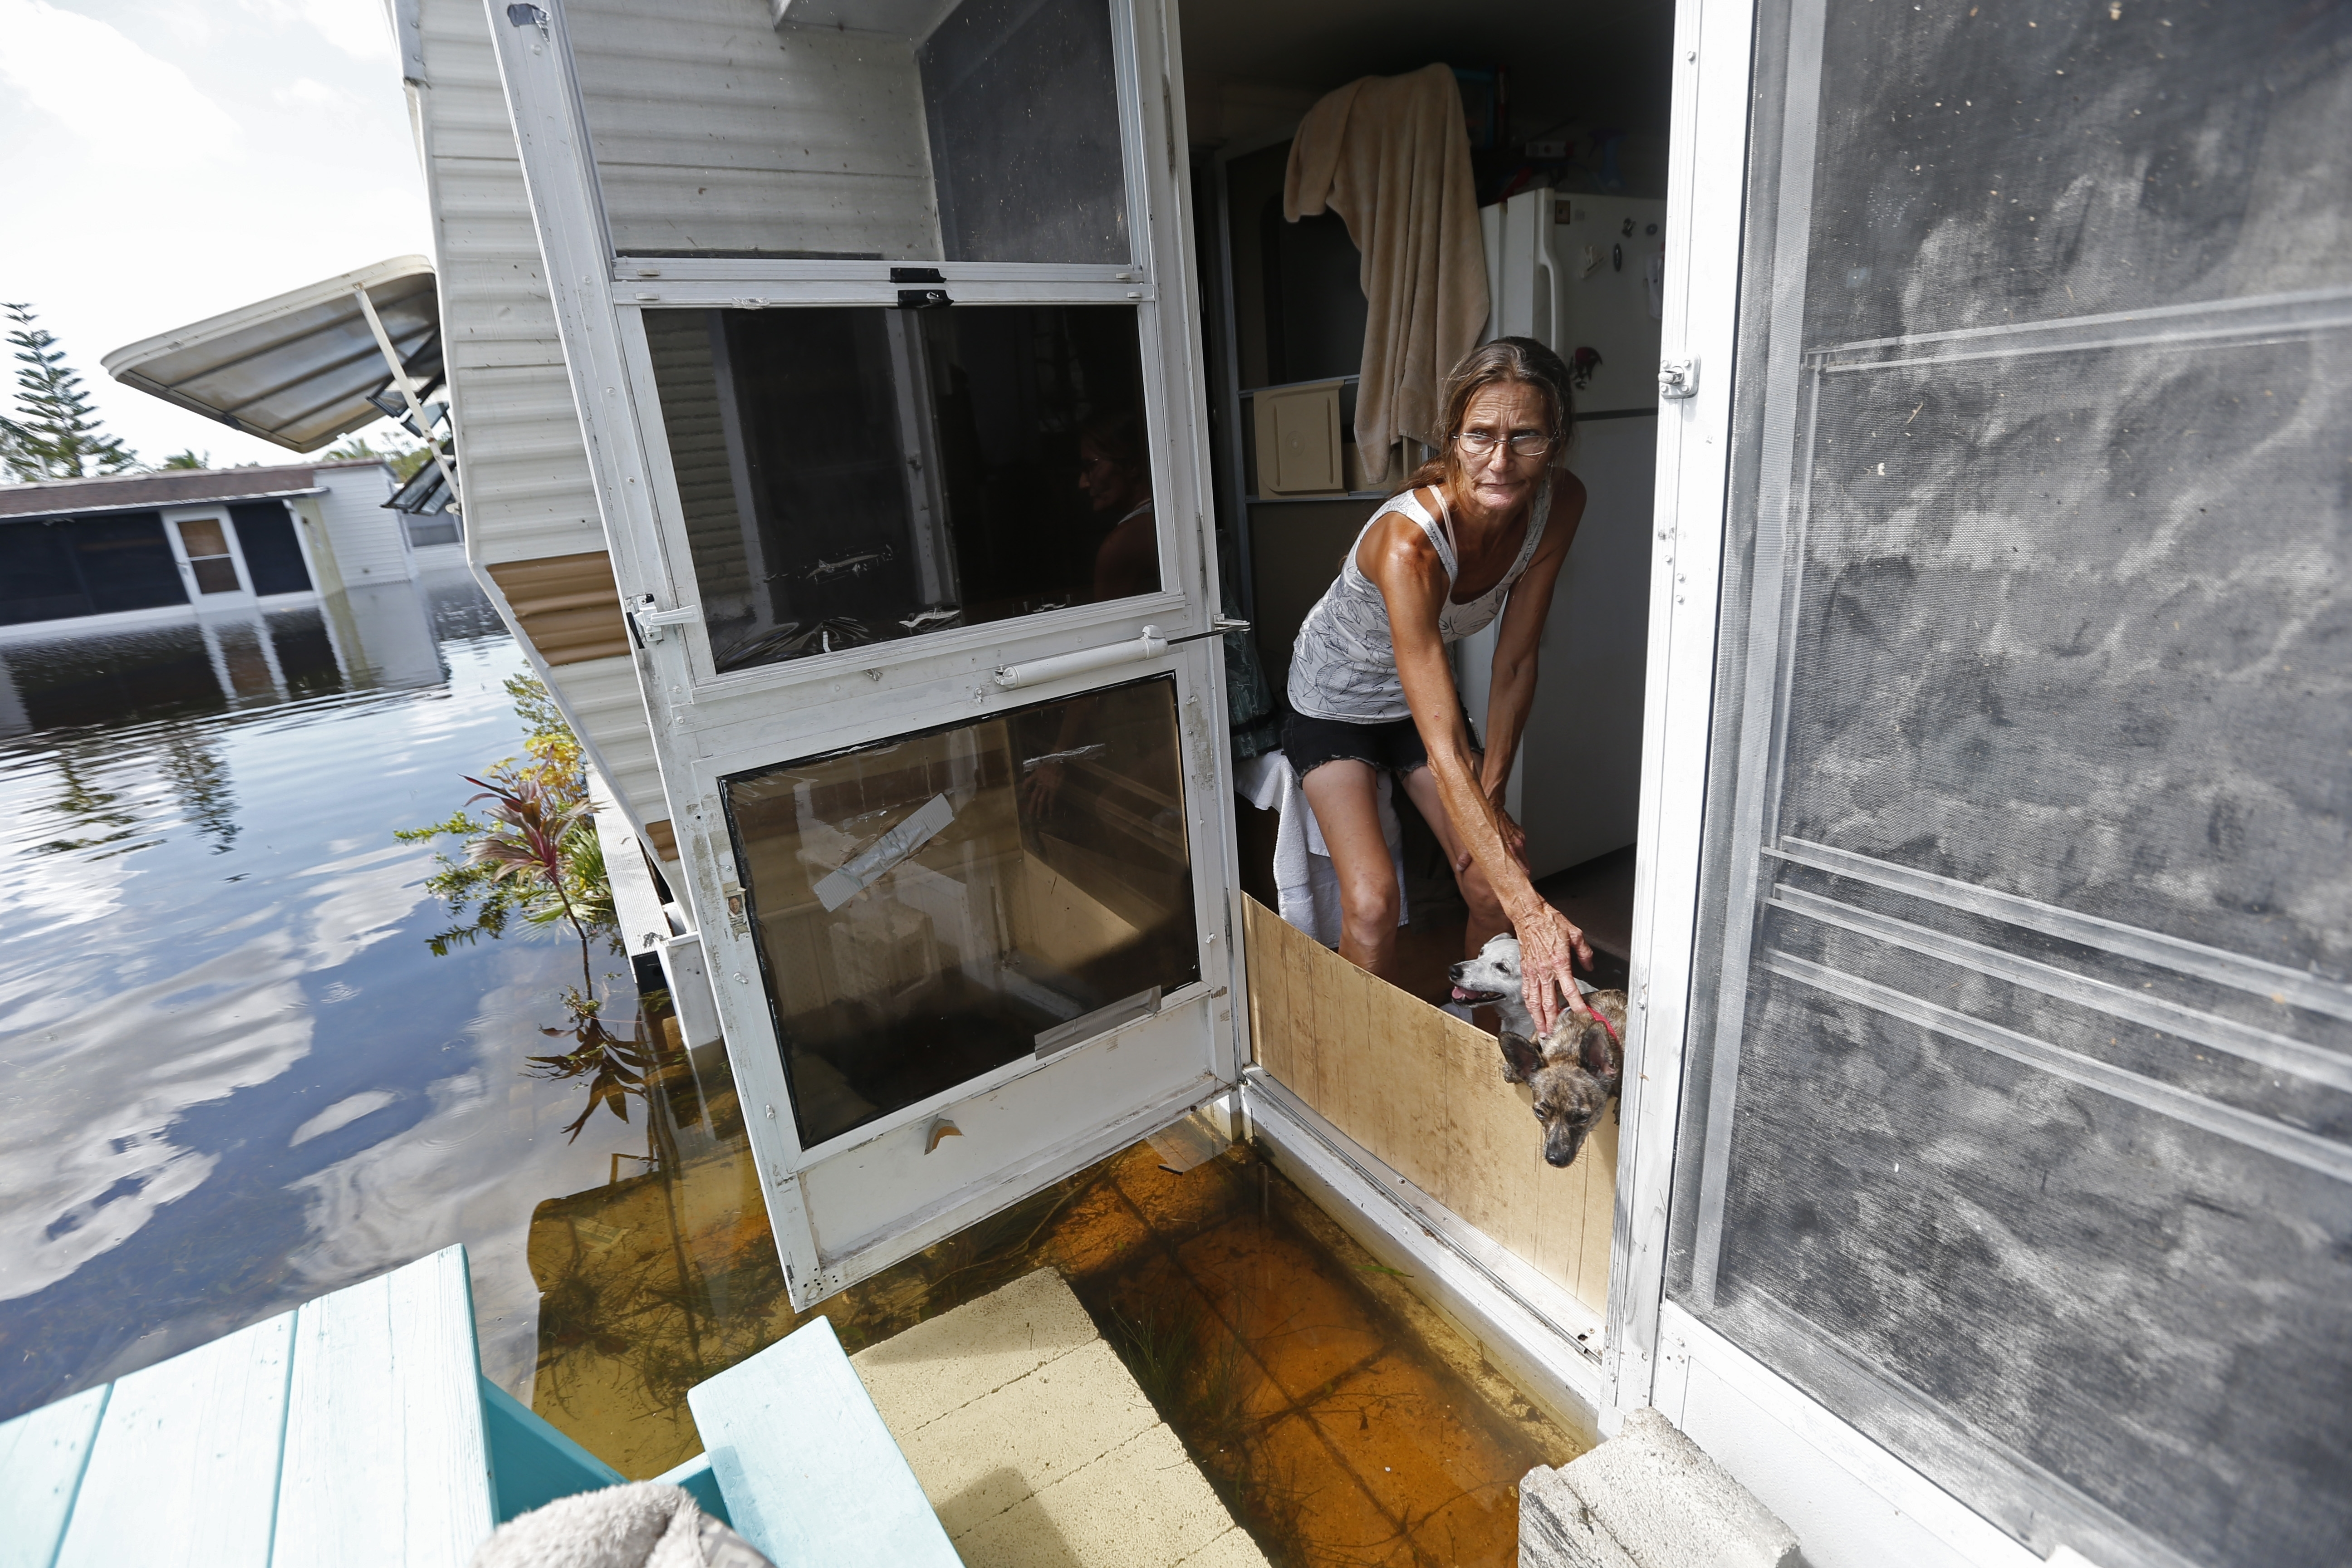 Irma The Poor-5 In this Sept. 12, 2017 photo, Cherie Ethier stands in a doorway of her mobile home with her dogs and cats, surrounded by floodwater, in the Marco Naples RV Resort, in the aftermath of Hurricane Irma, in Naples, Fla. Ethier and her husband stayed in a hotel during the storm, but returned to their trailer as soon as they could. (AP Photo/Gerald Herbert)